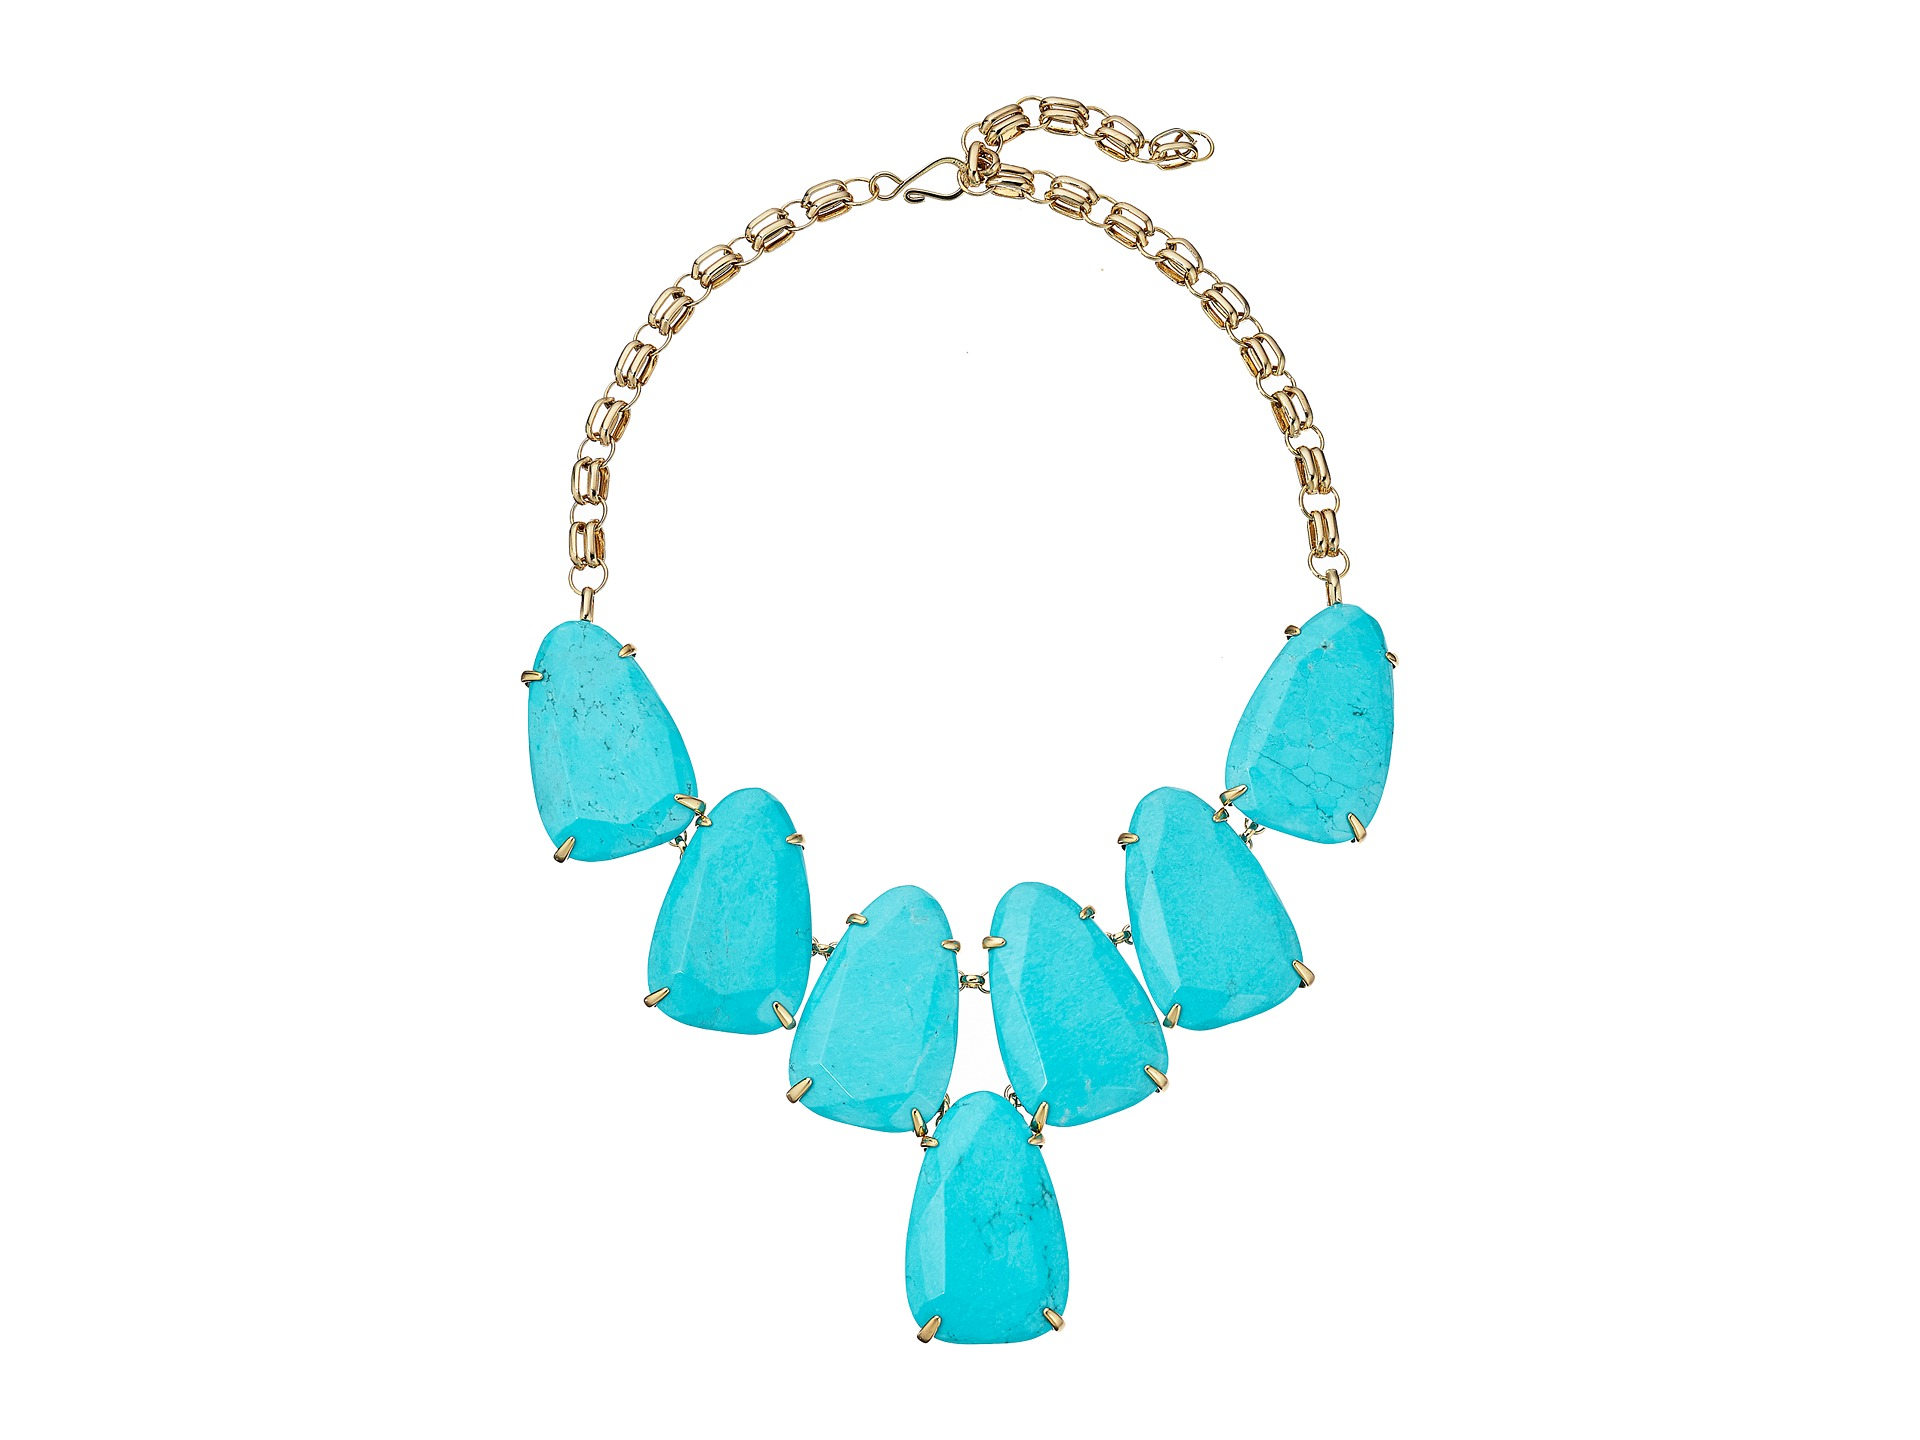 kendra harlow necklace zappos free shipping